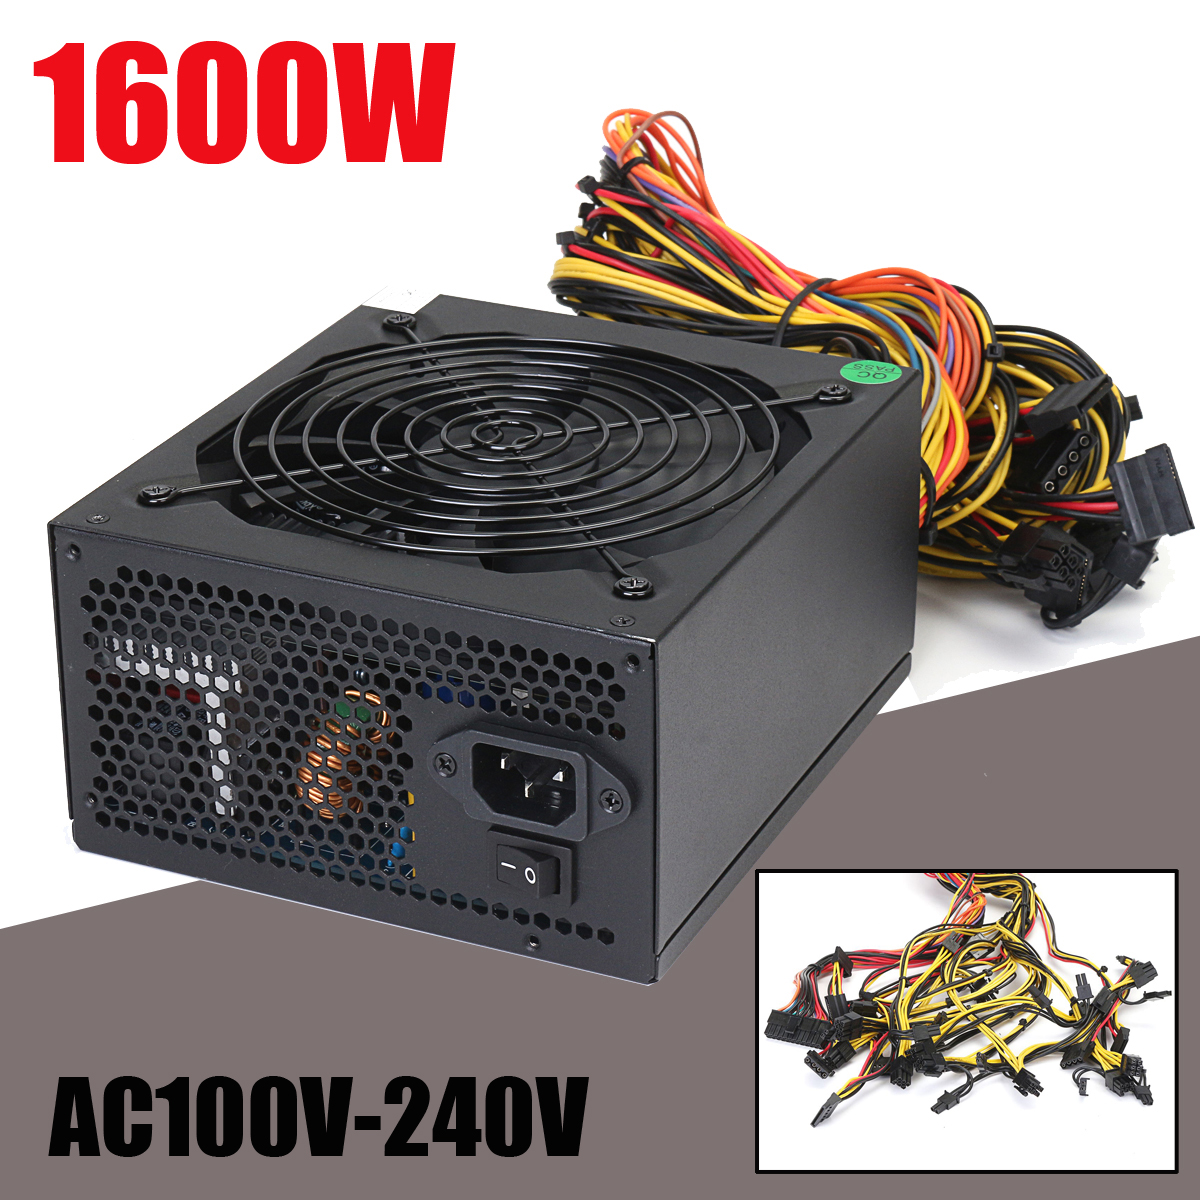 1600W Mining Power Supply For 6 GPU Eth Rig Ethereum Crypto Coin Miner Antminer High Quality computer Power Supply For BTC цена 2017